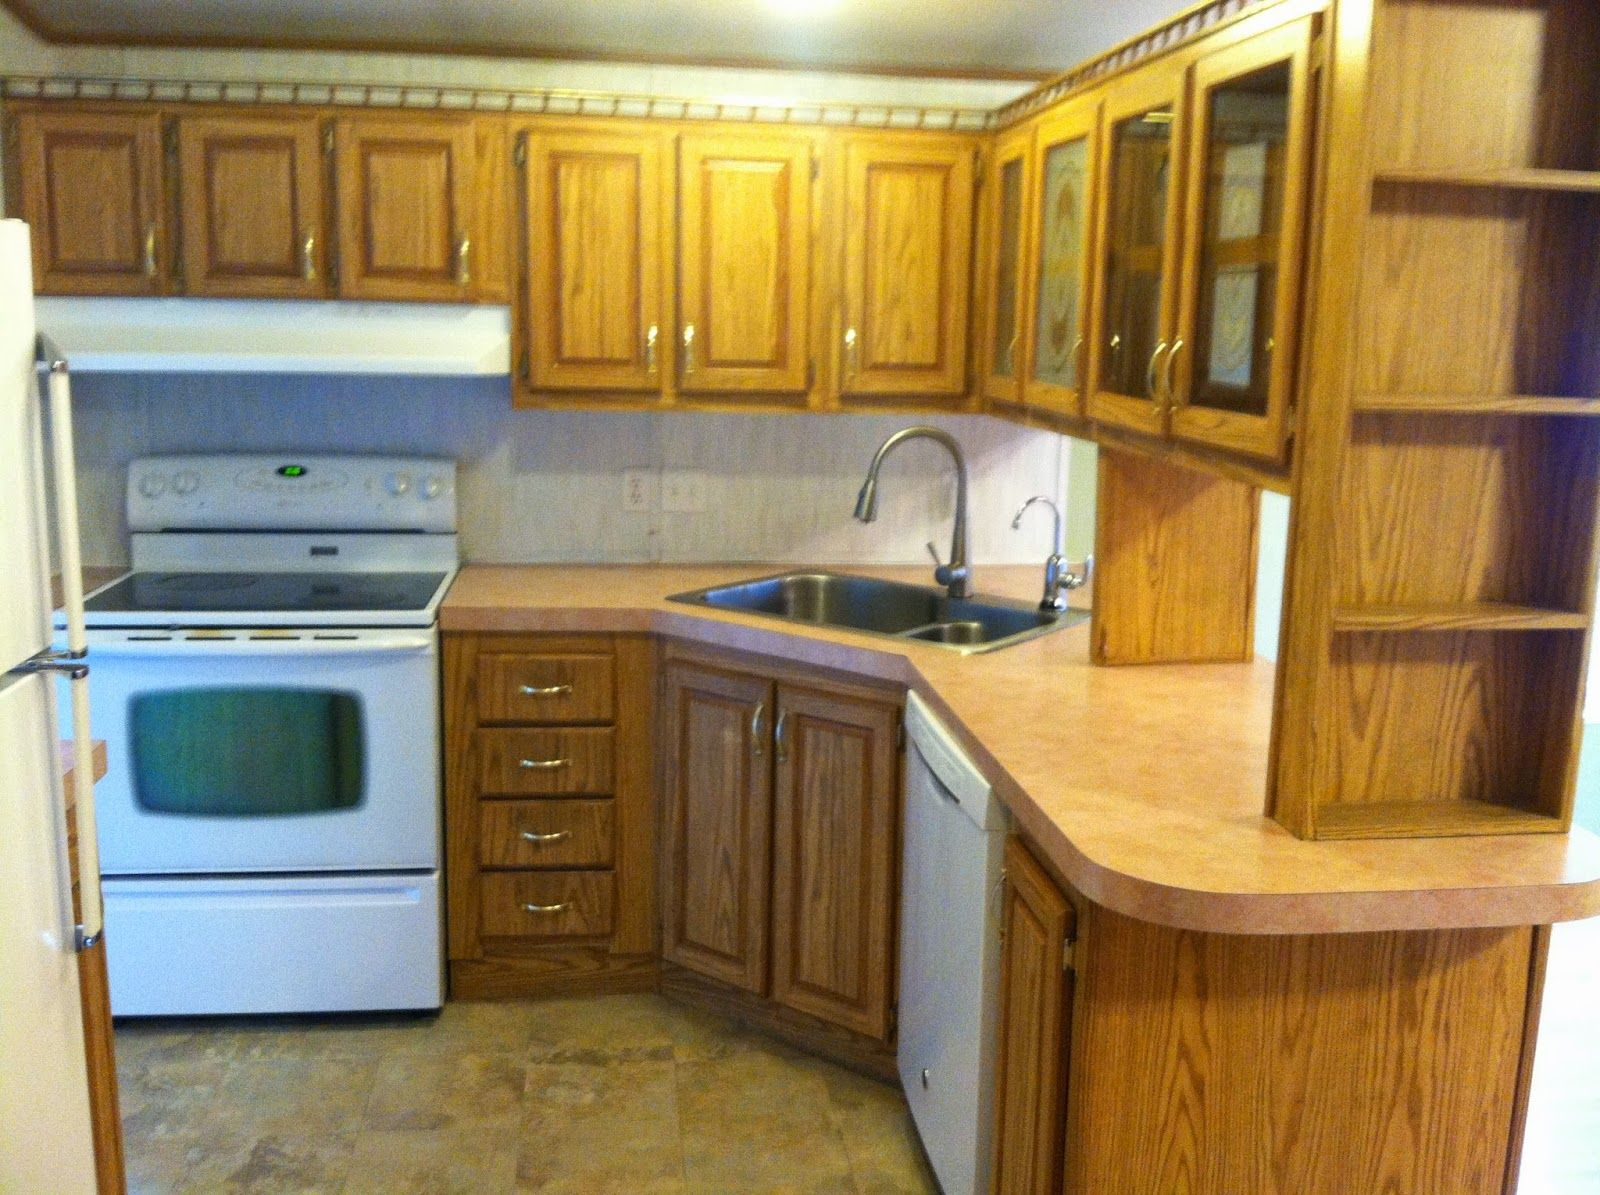 Roughly 150 Kitchen Makeover Mobile Home Mobile Home Renovations Mobile Home Kitchen Cabinets Remodeling Mobile Homes